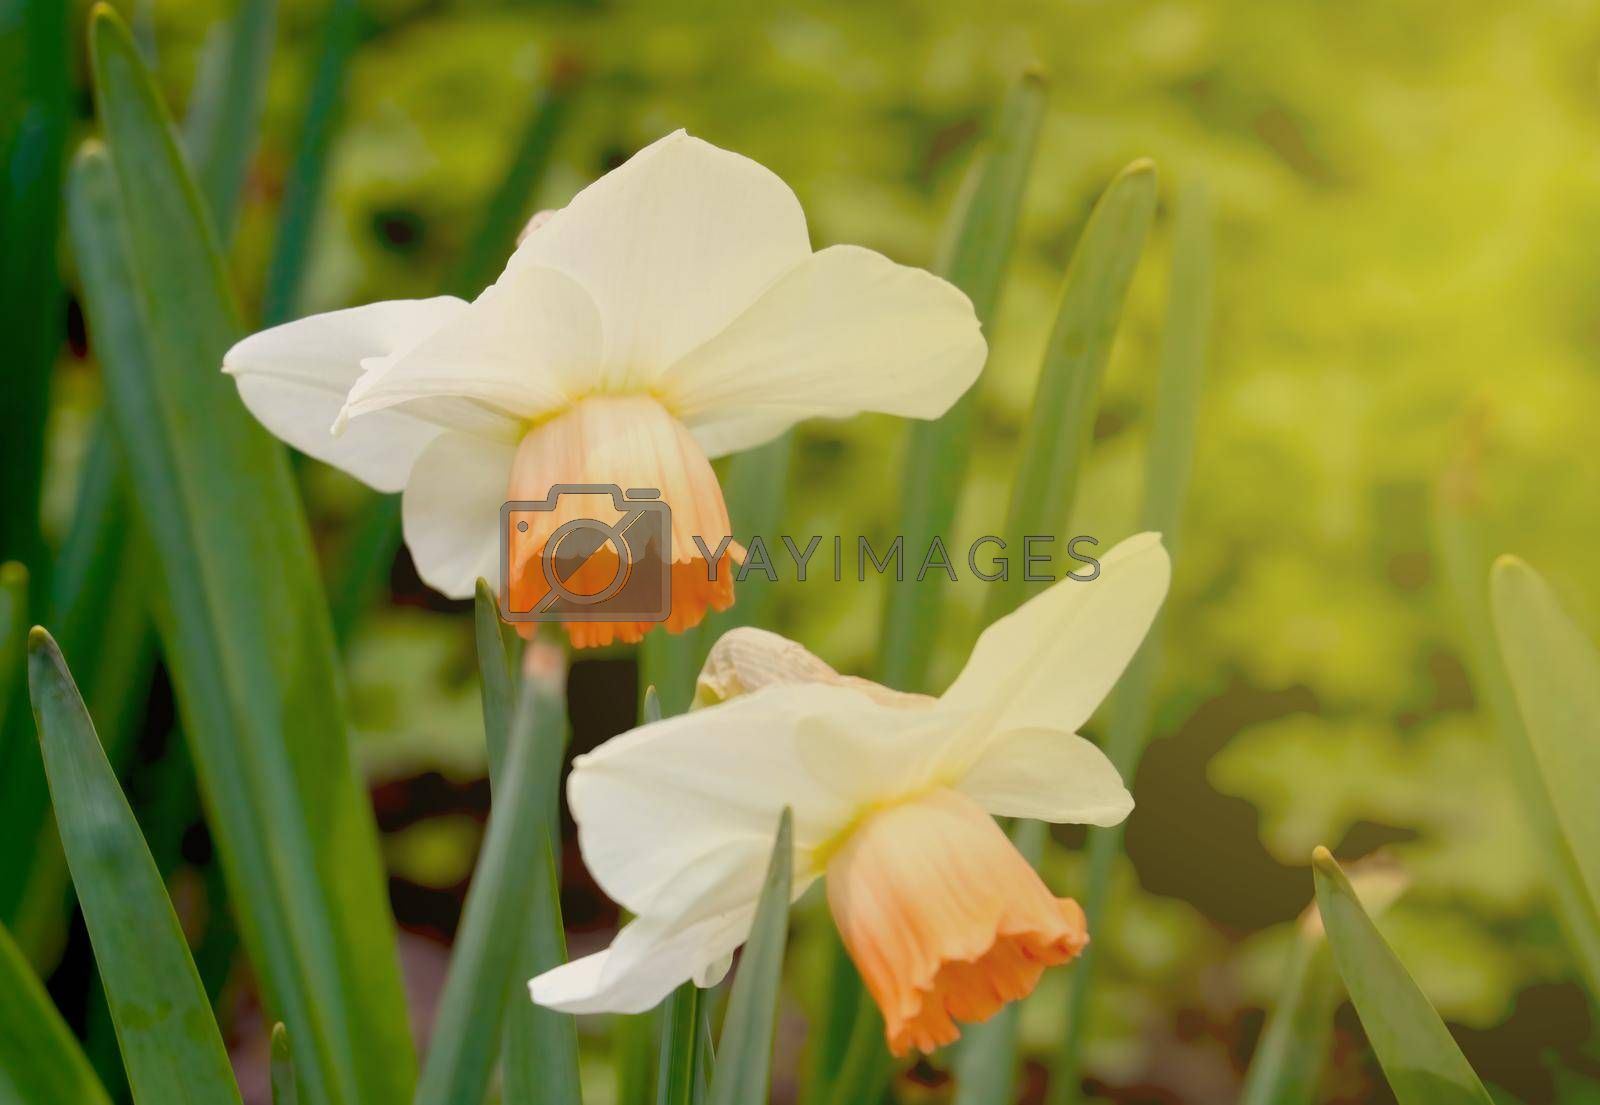 Royalty free image of Blooming daffodils in the garden during sunset. by kip02kas